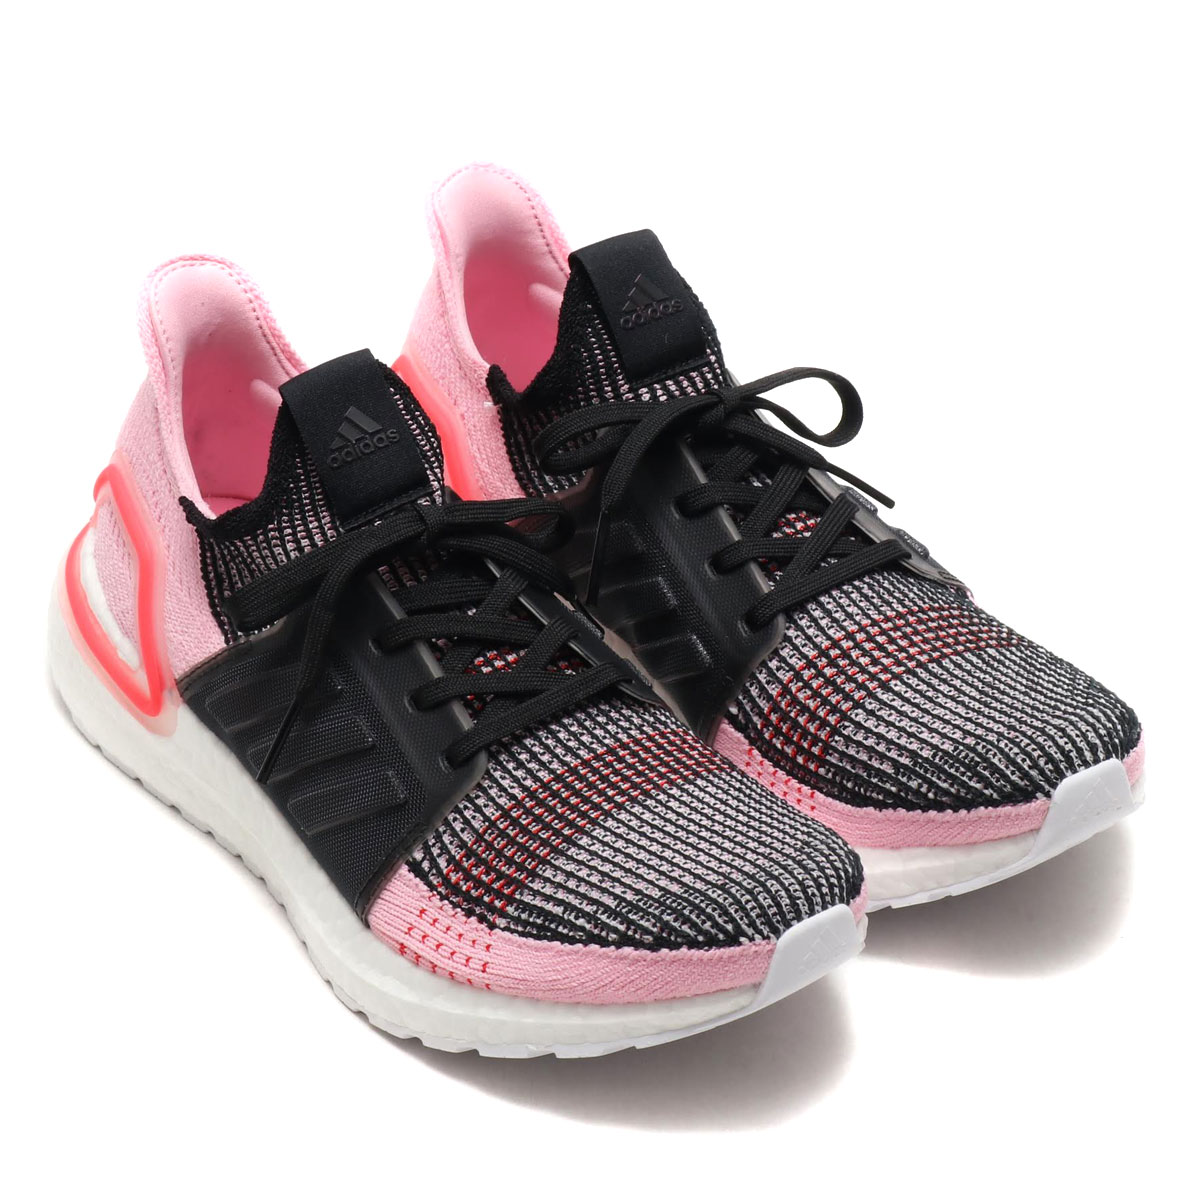 timeless design c7437 32f1c adidas UltraBOOST 19W (CORE BLACK/ORCHID TINT/ACTIVE RED) (Adidas ultra  boost 19W)